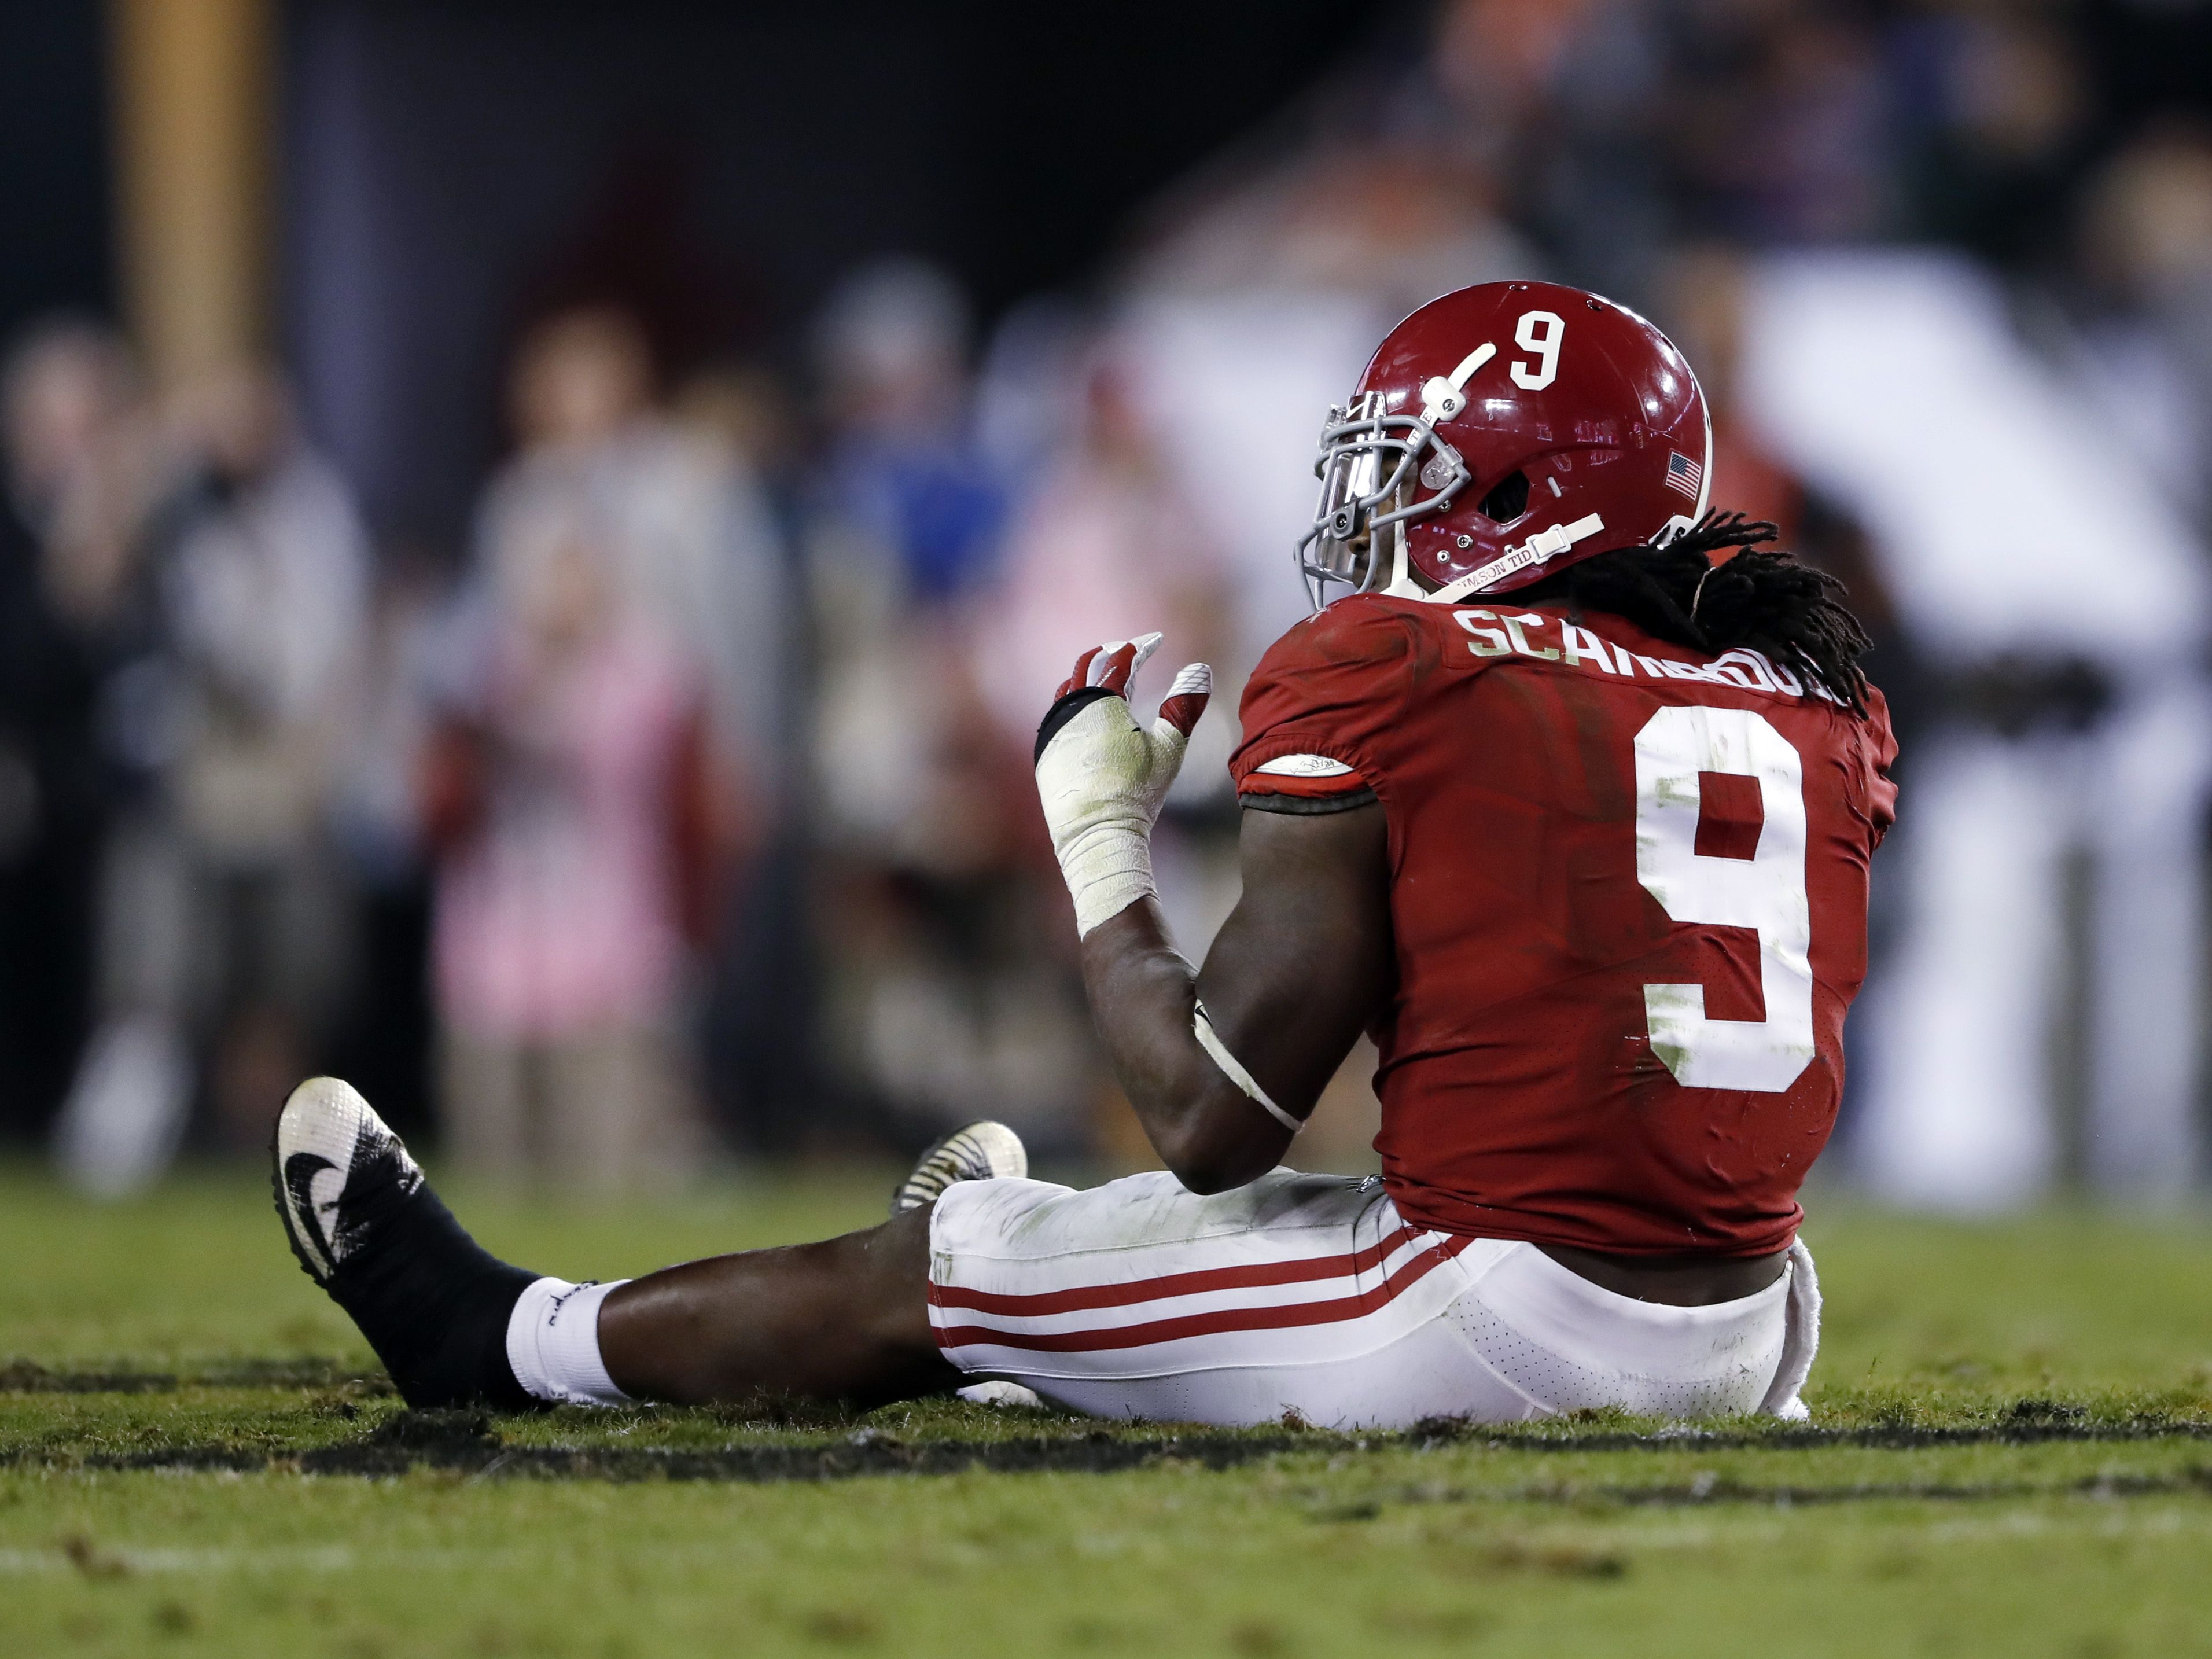 Bo Scarbrough goes down with leg injury ...